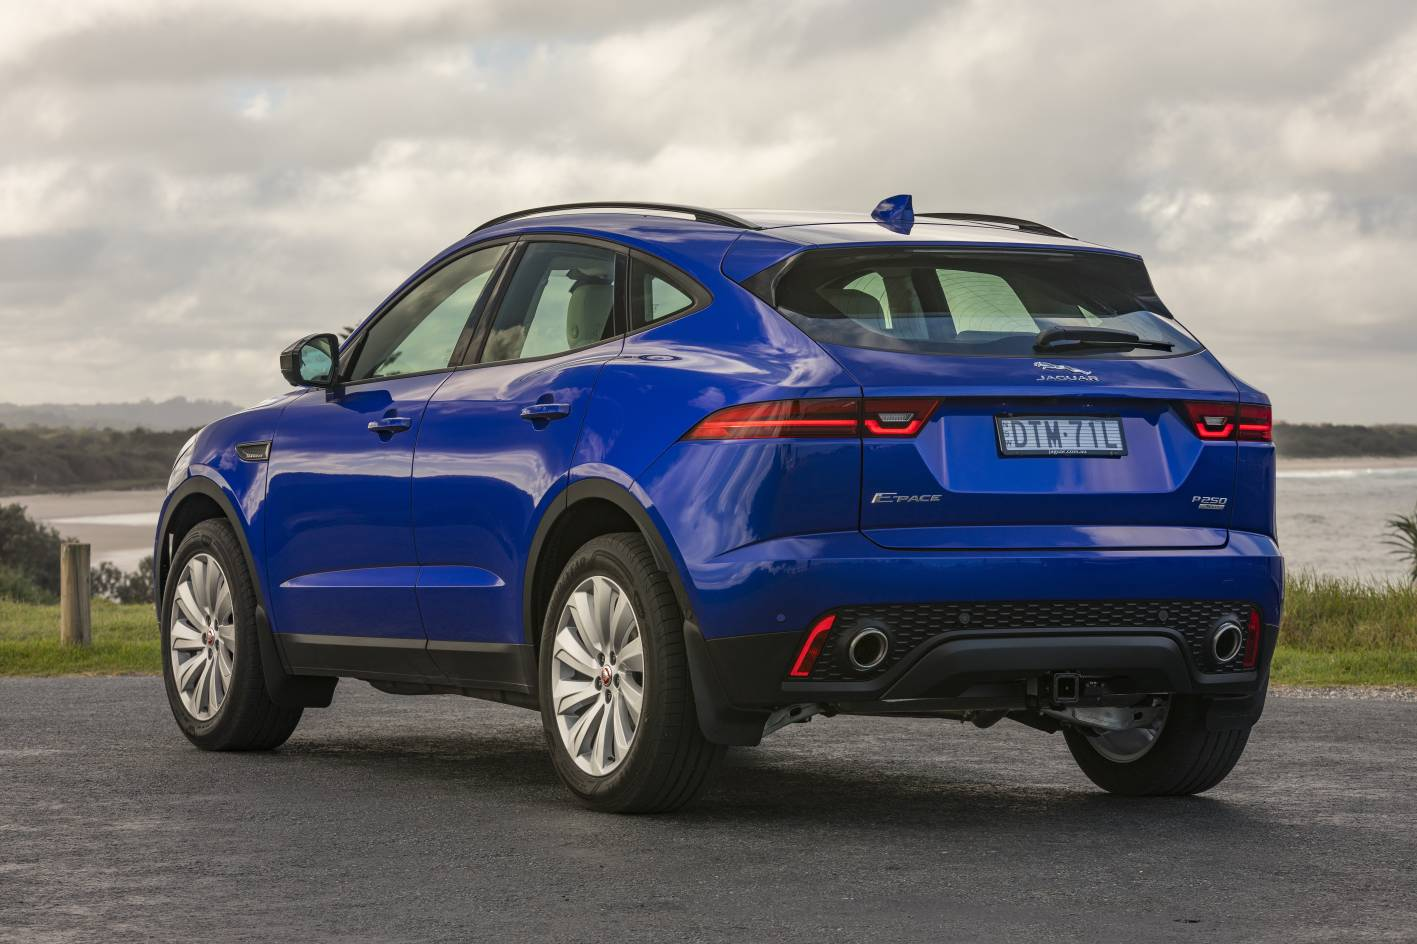 2018 Jaguar E-Pace SUV now on sale, from $47,750 | Top10Cars